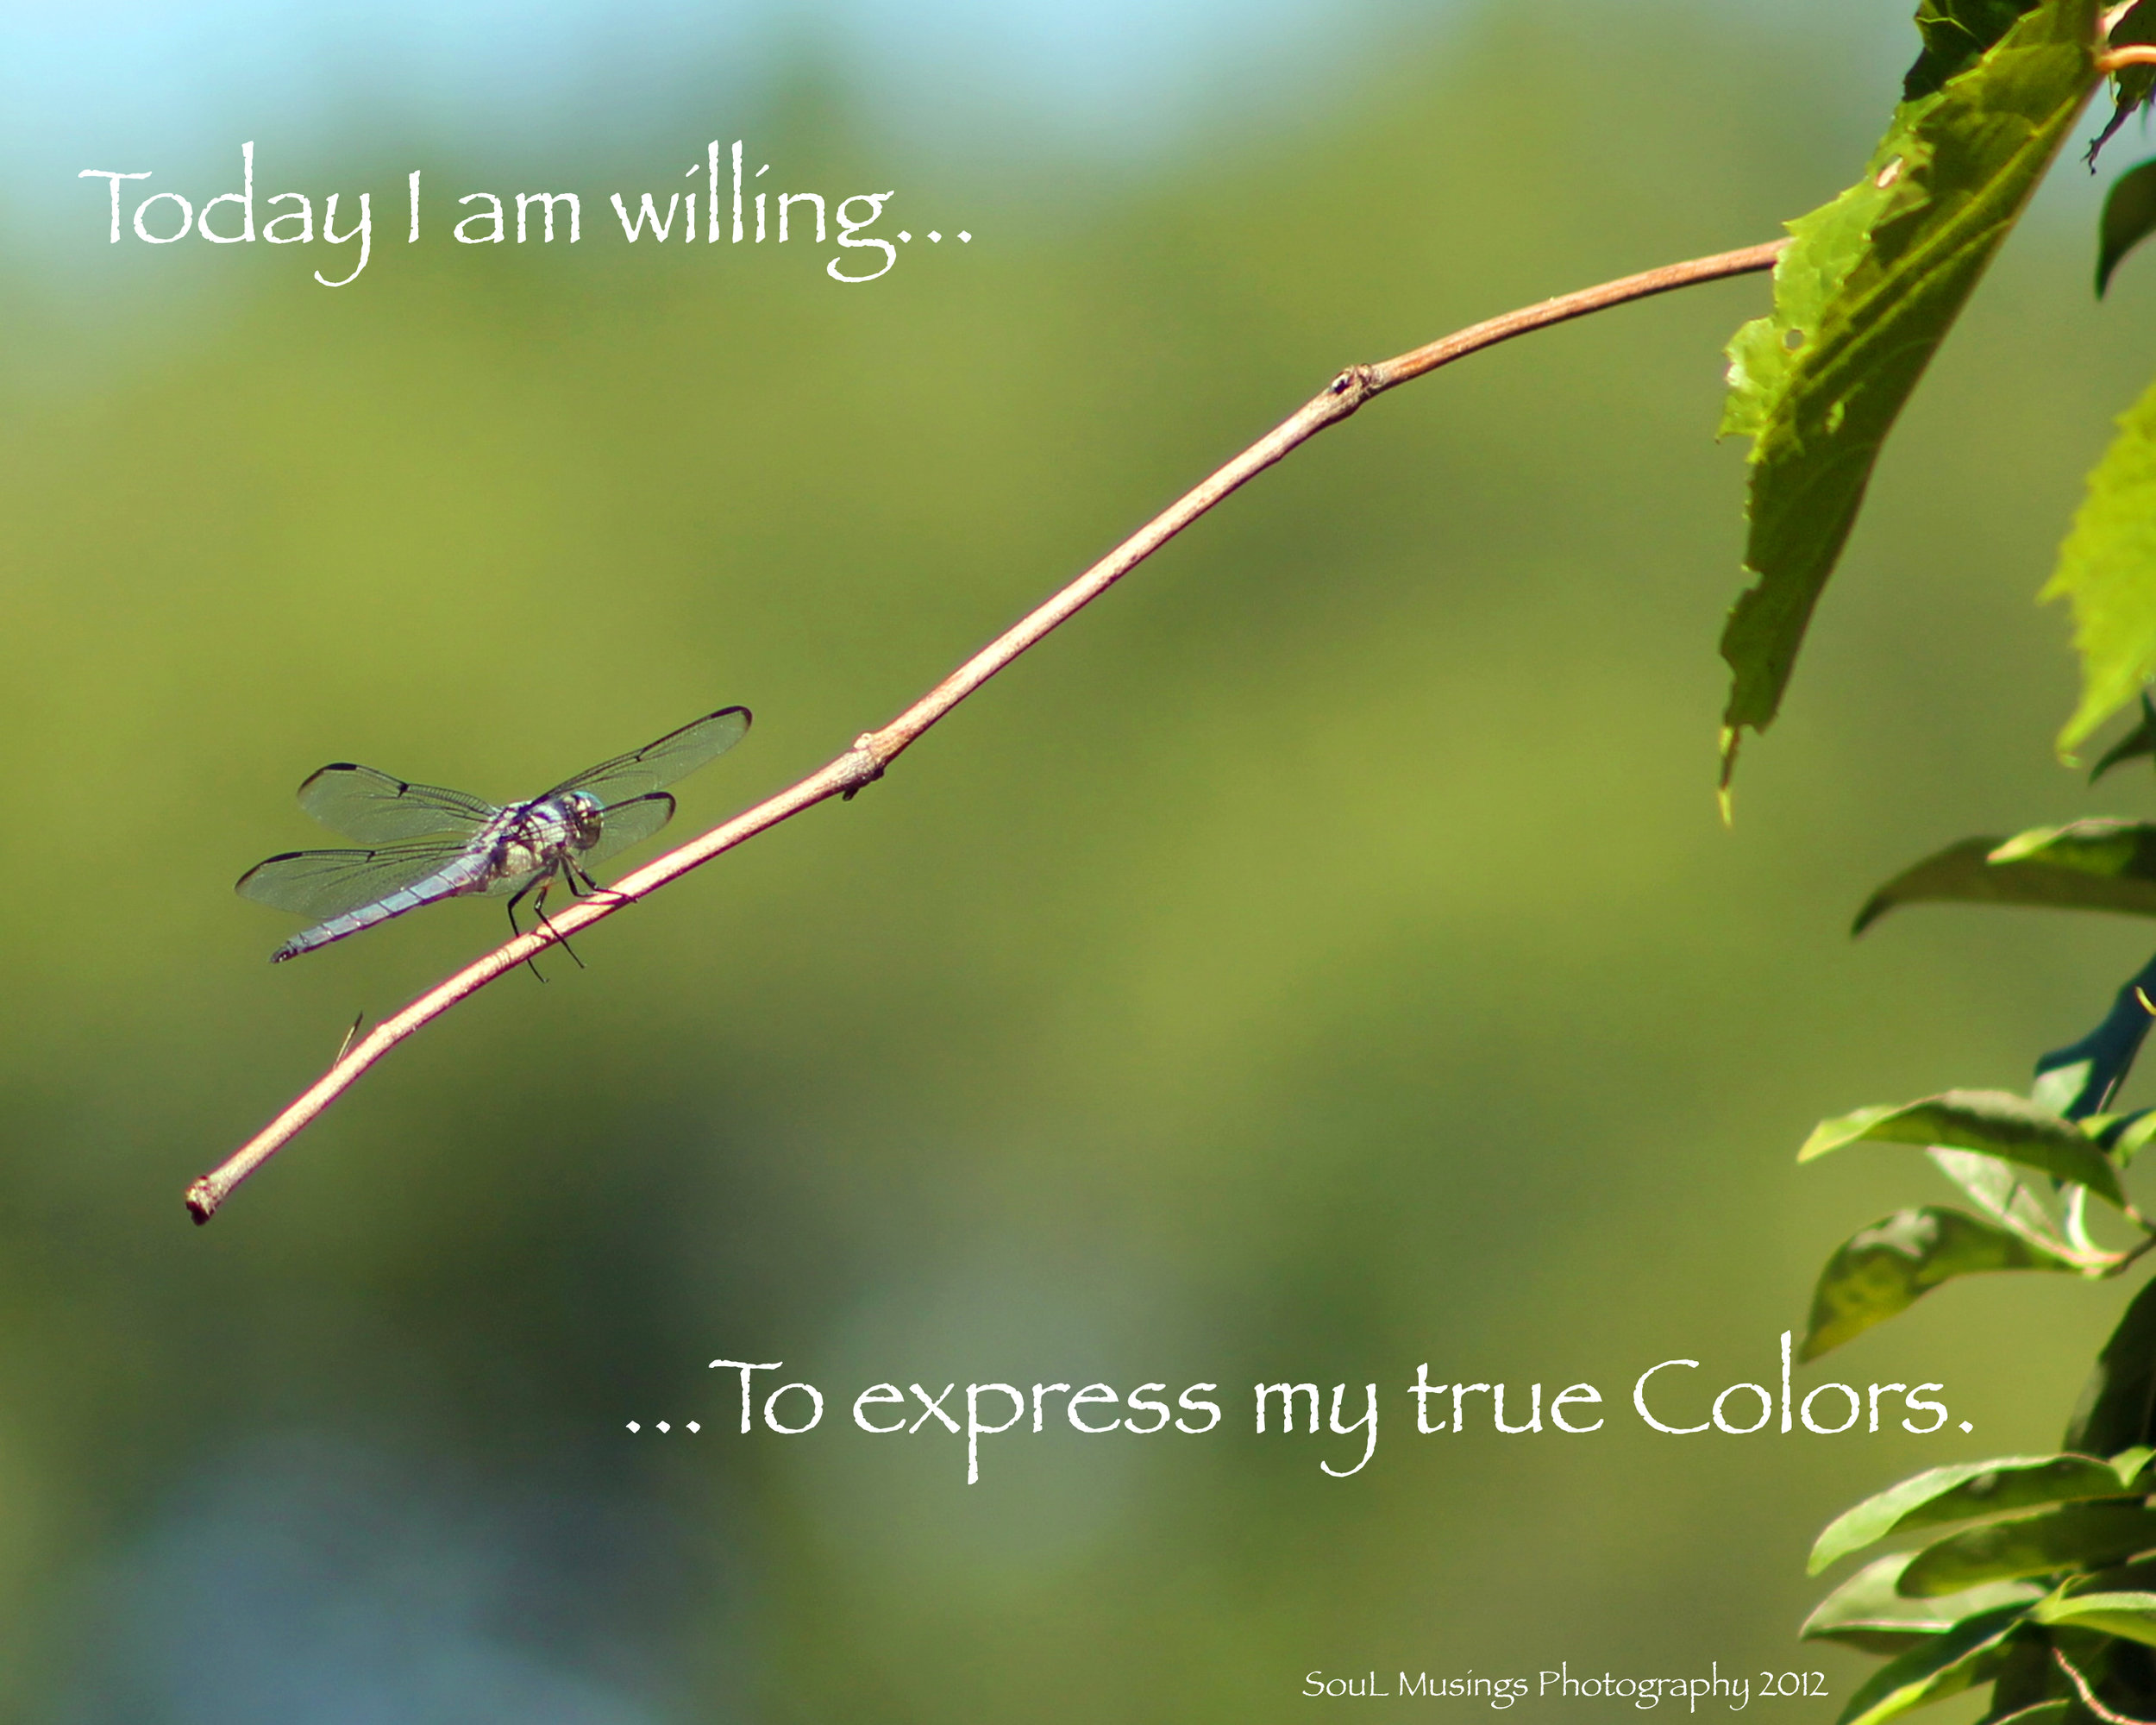 Dragonfly_colors.jpg